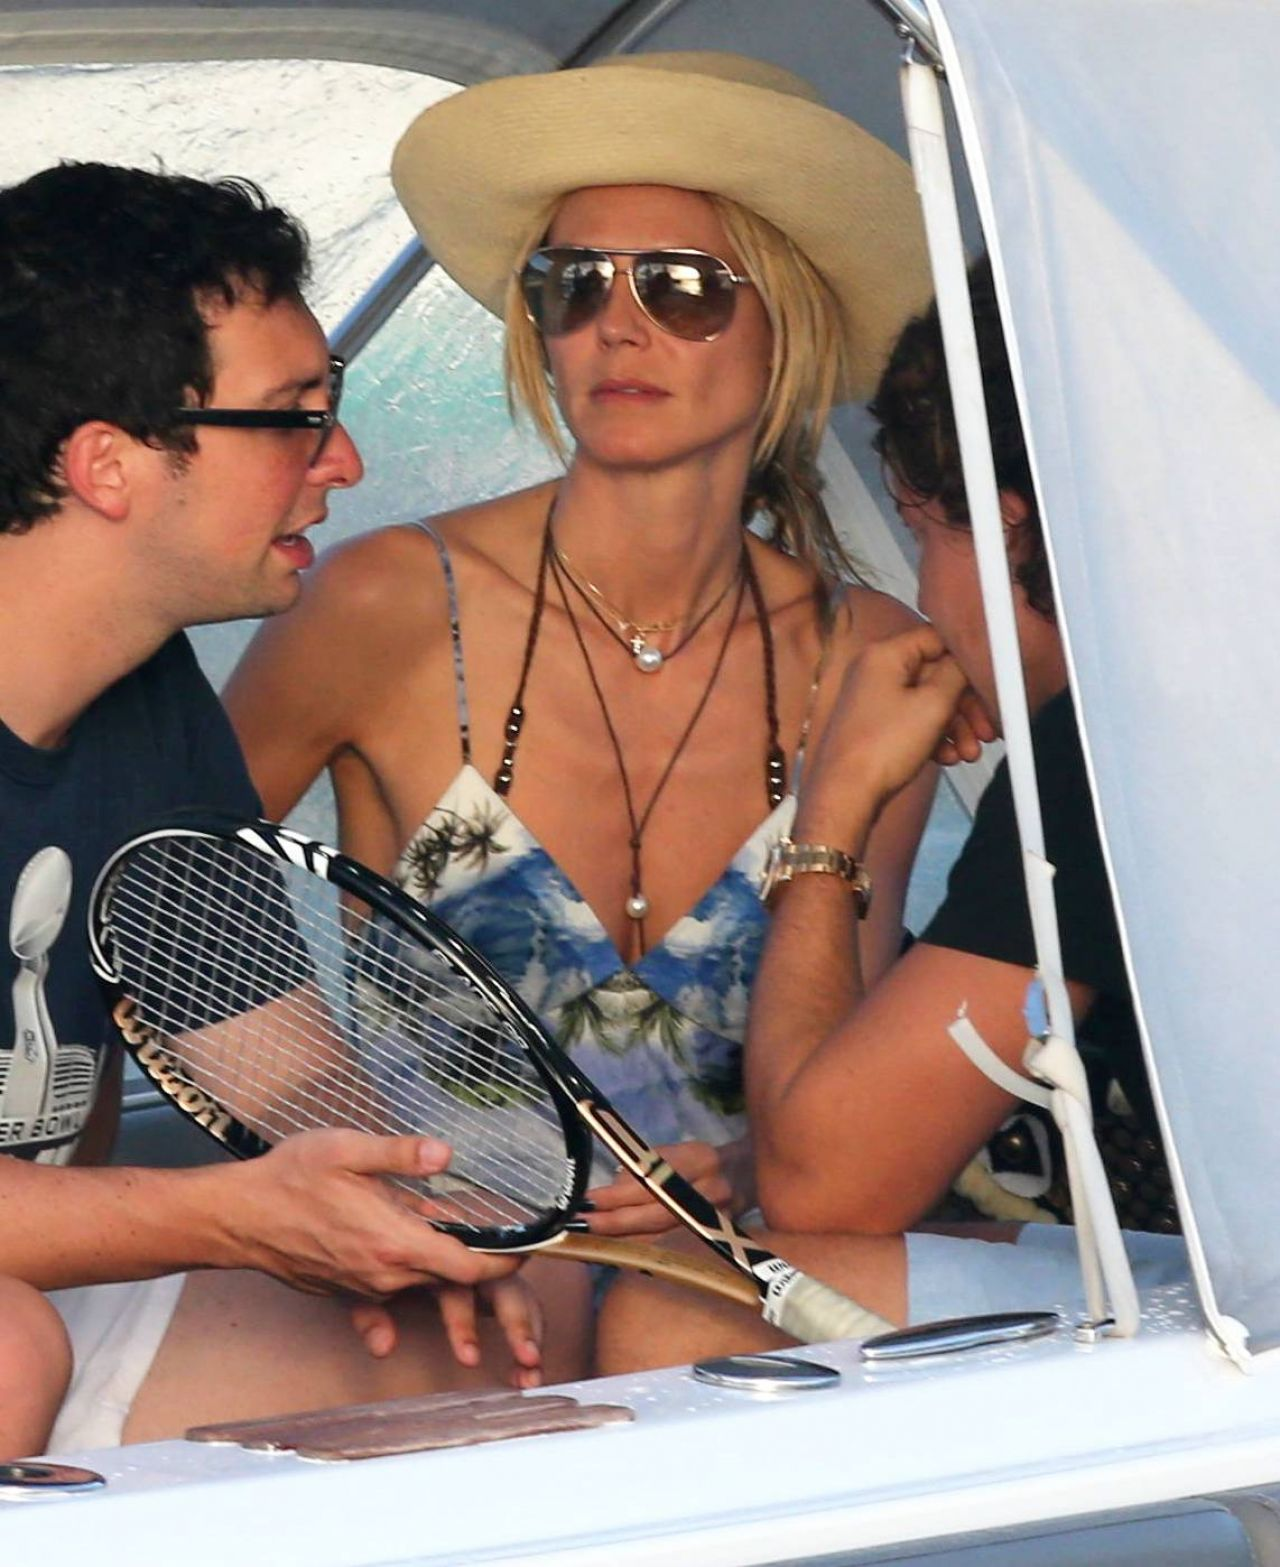 Heidi Klum On a Boat - Vacationing in St.Barts - January 2015